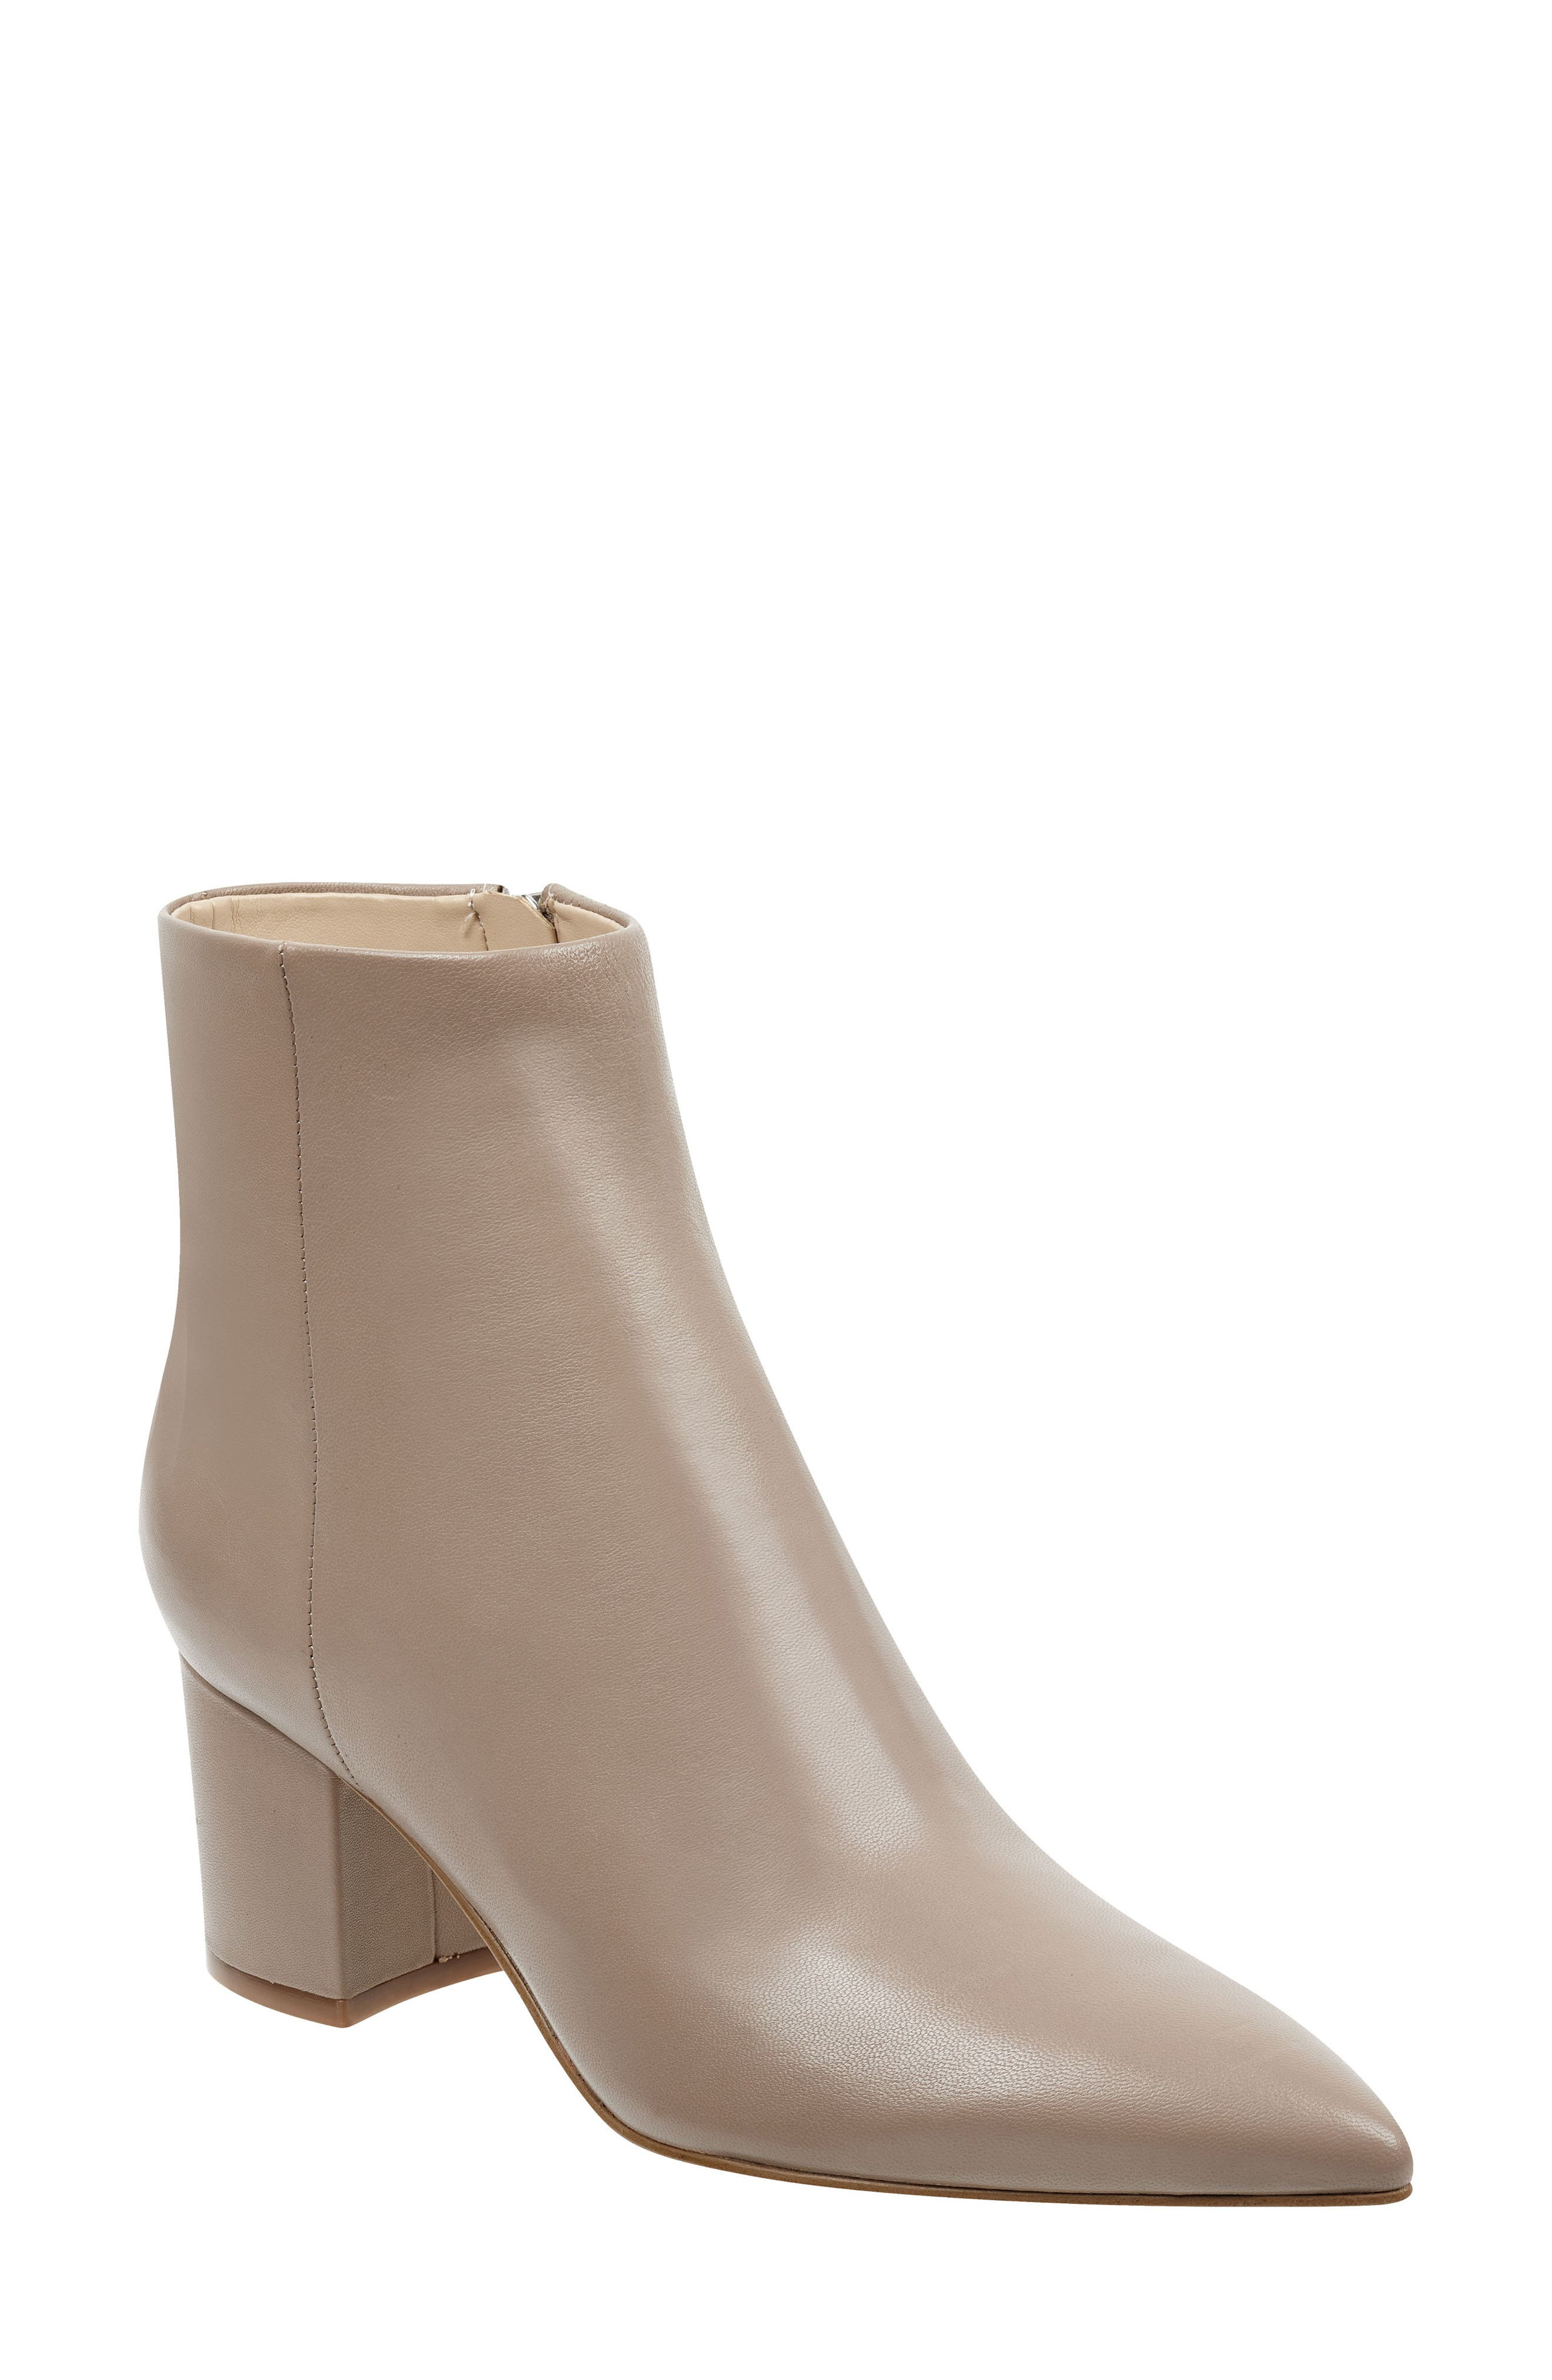 Jarli Bootie,                             Main thumbnail 1, color,                             TAUPE LEATHER